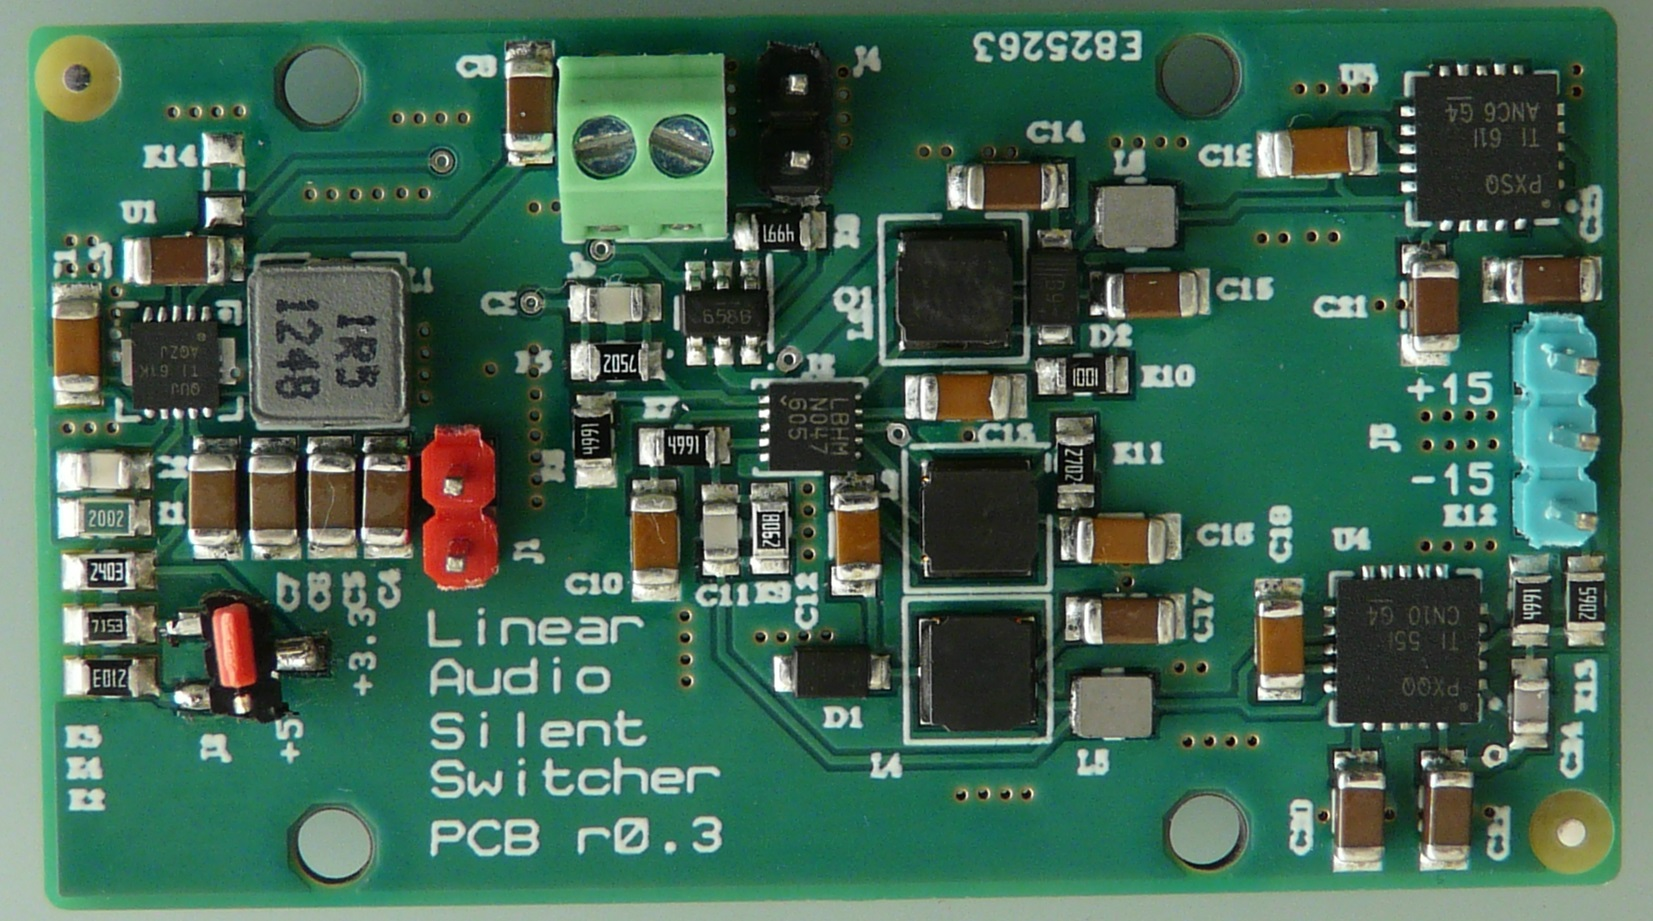 The Silentswitcher Linear Audio Nl Power Supply Wiring Diagram Overwhelmingly Analog Circuitry Wants To Be Fed With 15vdc So That Was Target For My Adventure But Increasingly Is Combined